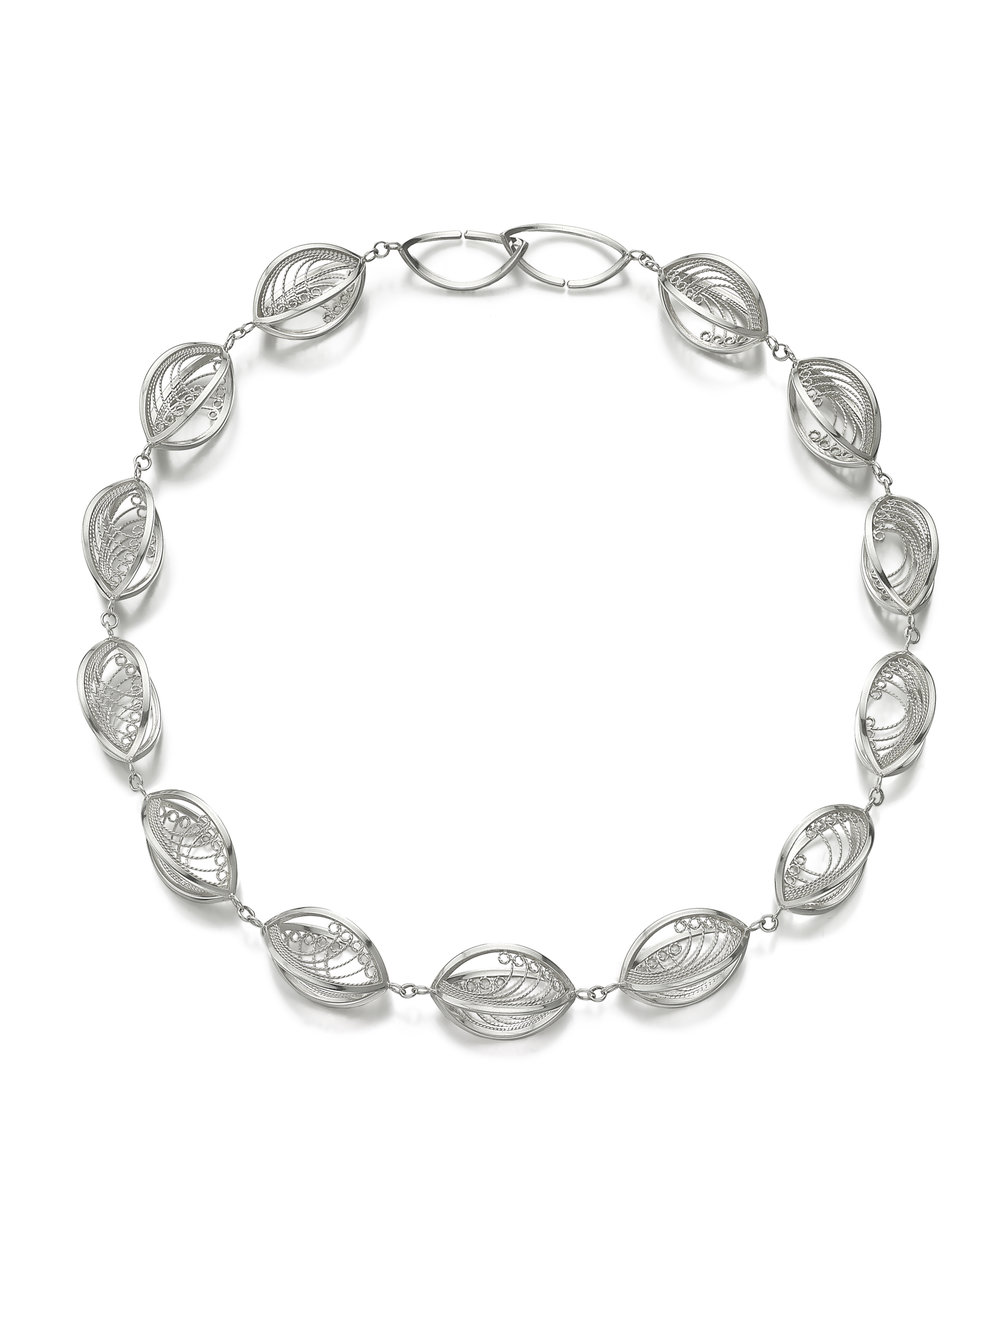 Mirrored Ellipse Choker.jpg